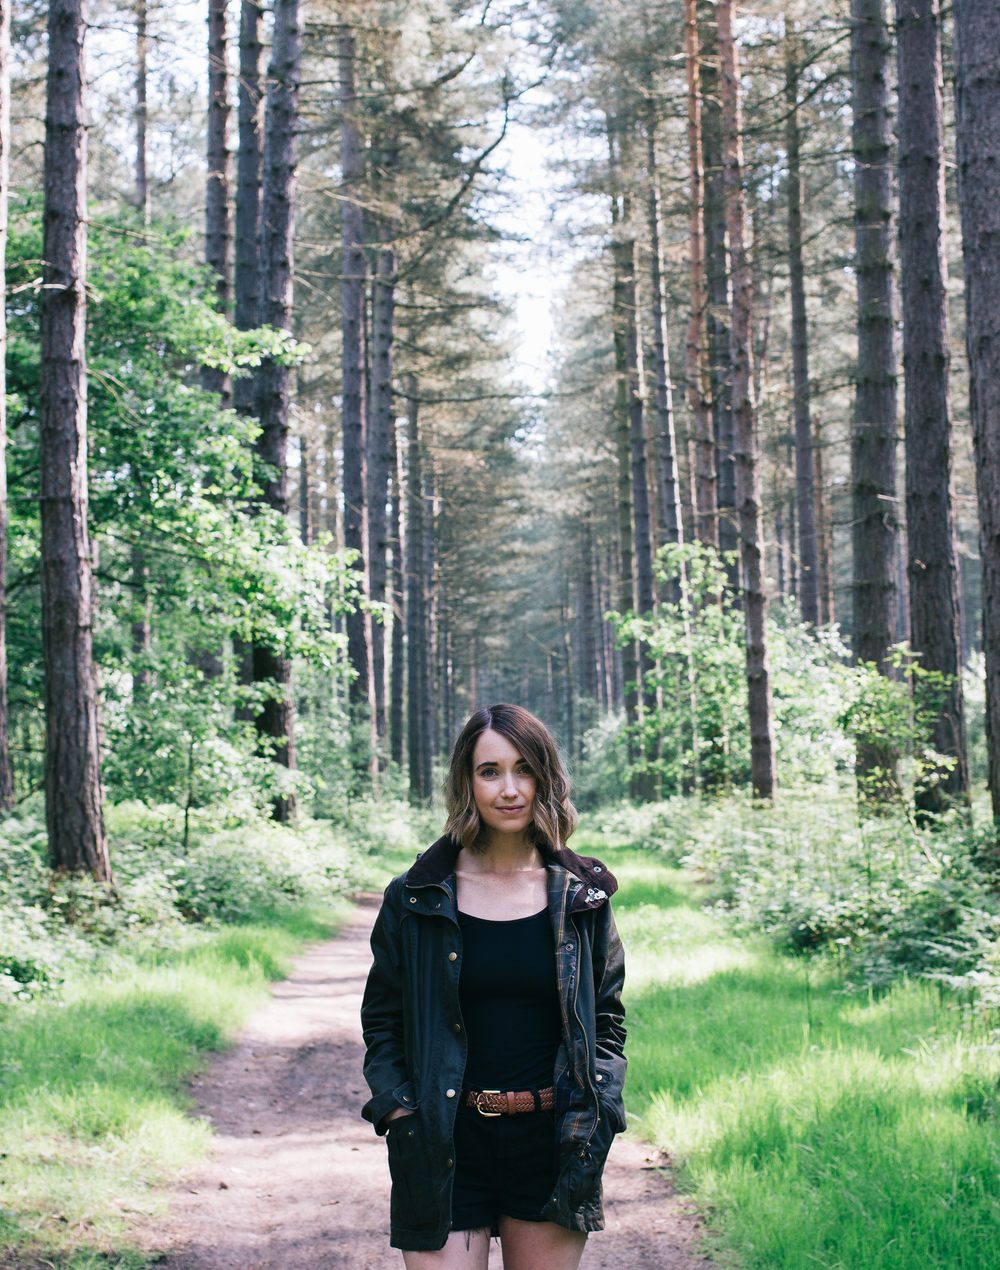 How i style the barbour - I wear my Barbour all year round, apart from when it's really cold or when it snows as then I opt for my faux fur parka to keep me snug. But in general, you can wear a Barbour through pretty much any type of weather. It's such a great item to have in the UK as it's so versatile and here are my style essentials to pair with my jacket that capture the quintessential traditional Barbour style perfectly;- A cream cable-knit jumper.- A striped Breton.- A chunky dark grey/black jumper.- A striped dress.- A woollen jumper dress, I'm in love with these from H&M this year.- A black pair of jeans or dark denim.- A pair of Chelsea boots.- A pair of loafers.- A tote bag or satchel.- A pair of Denim shorts.